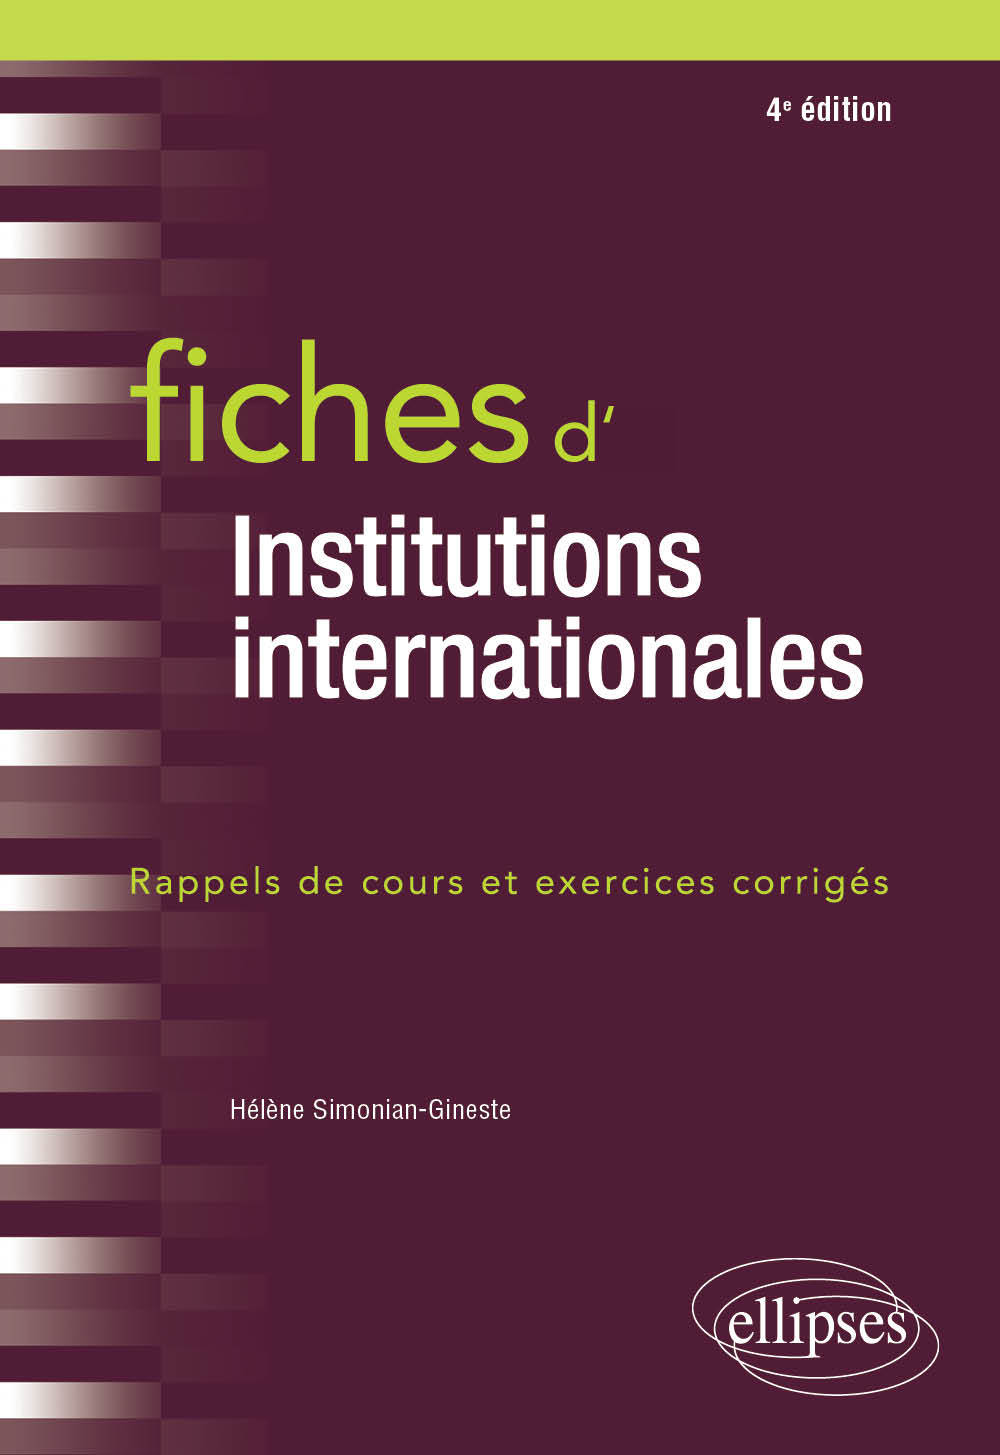 FICHES D'INSTITUTIONS INTERNATIONALES 4EME EDITON